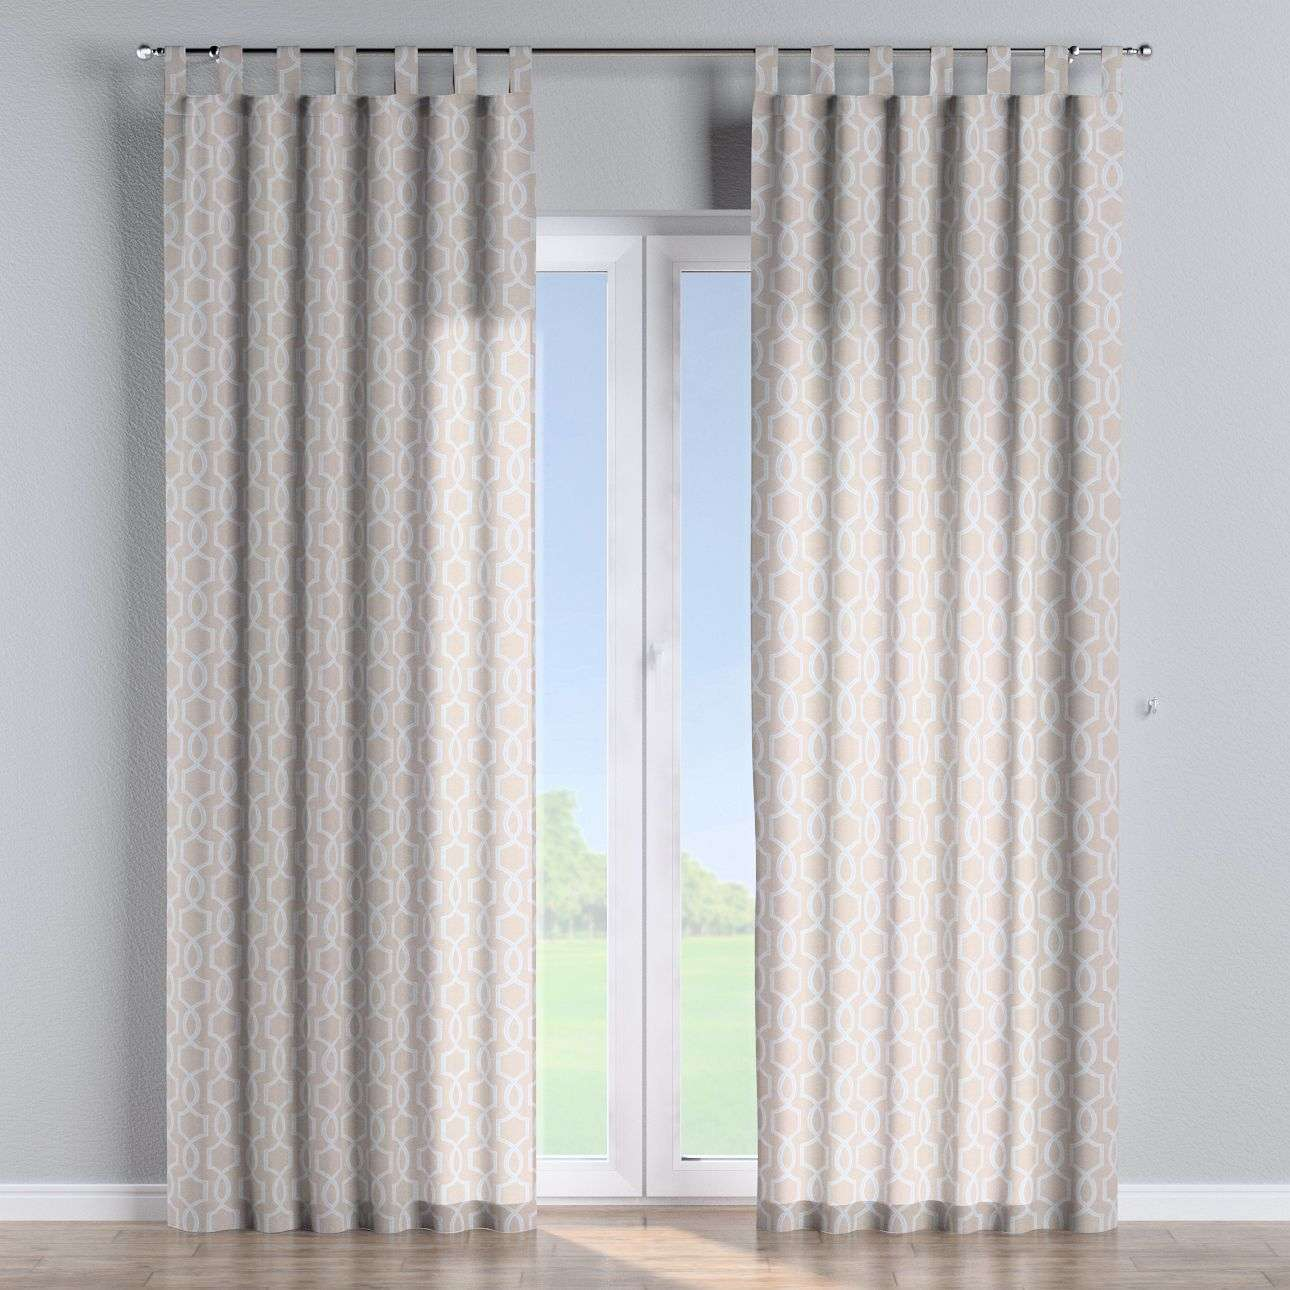 Tab top curtains in collection Comics/Geometrical, fabric: 141-26